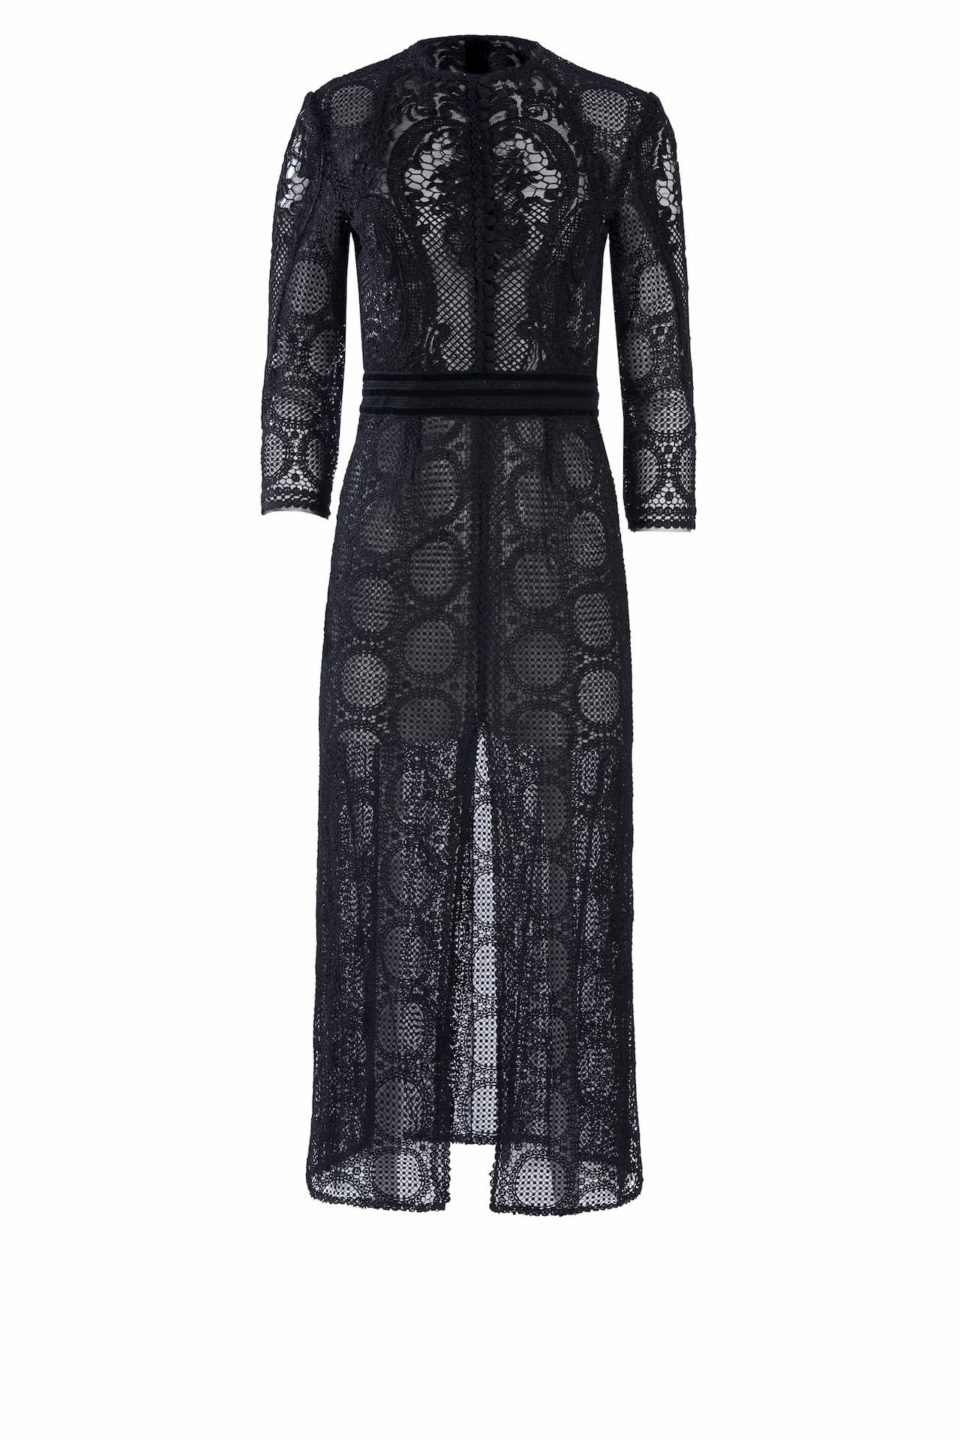 Ida FW2061 black Victorian Cordone Lace Sheath Dress with Button-Front Bodice and Mesh & Velvet Trim